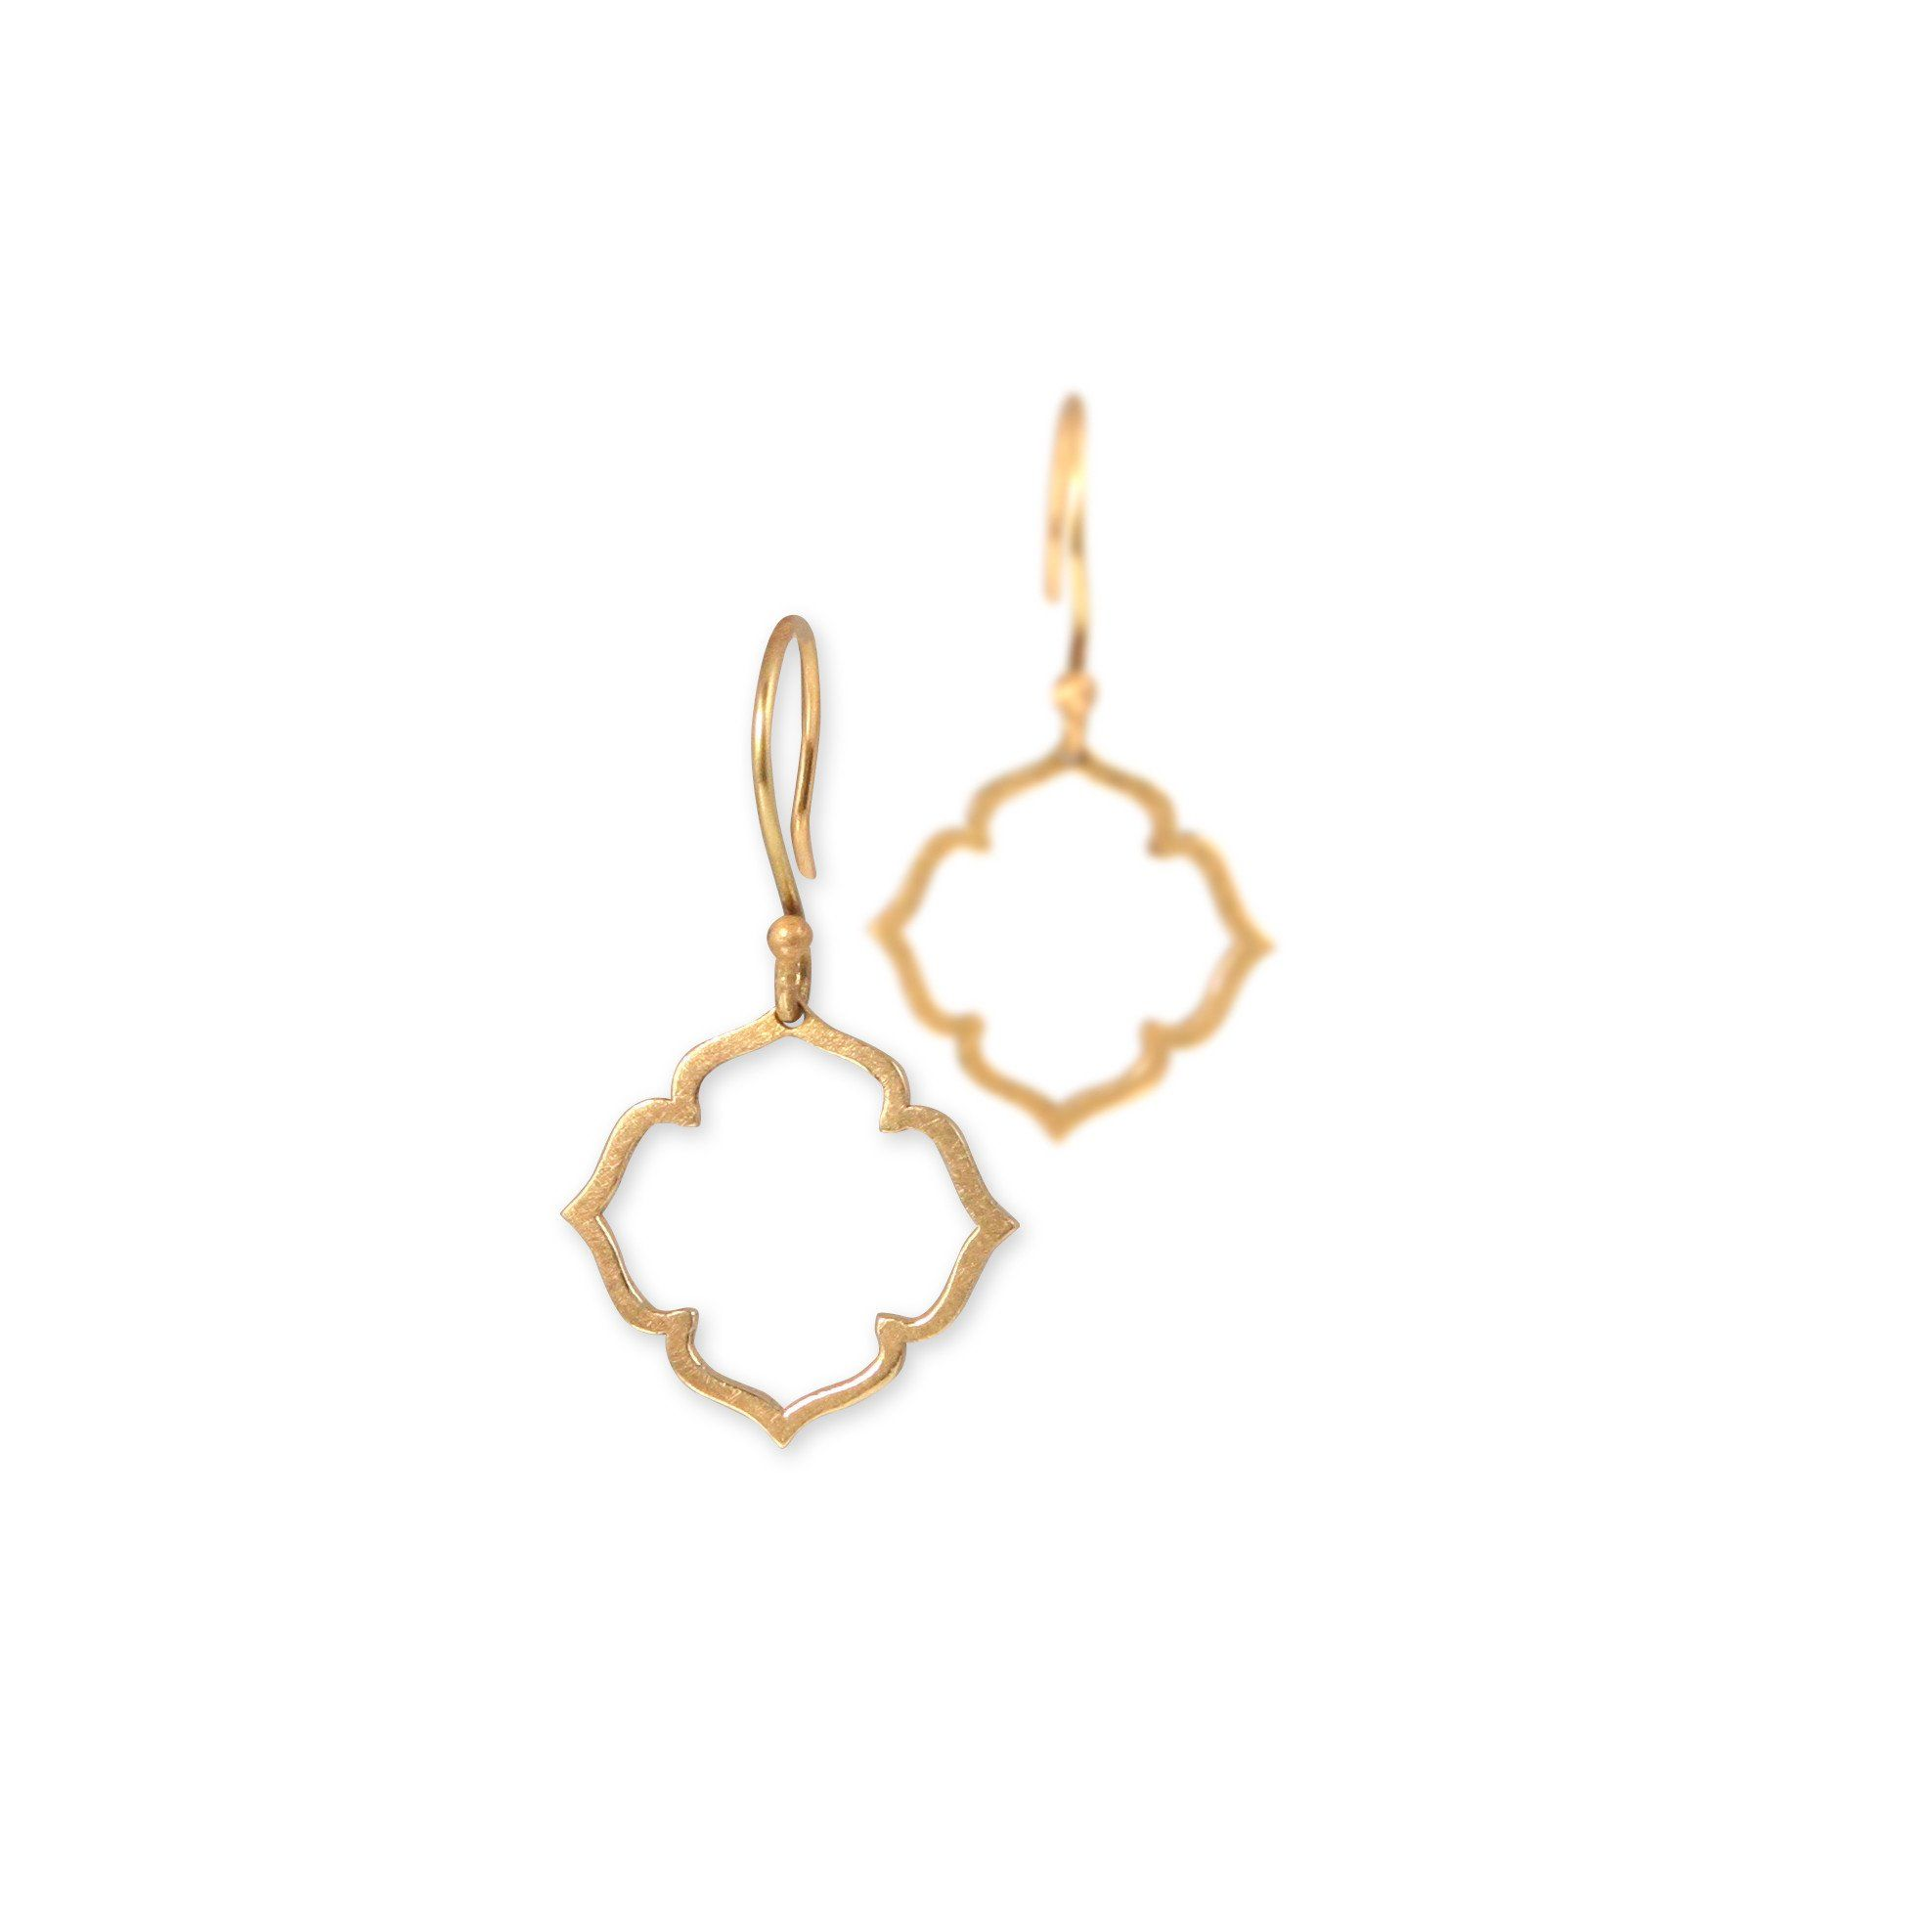 alice preorder on operandi snow cicolini drop pin by earrings architecture moda summer for